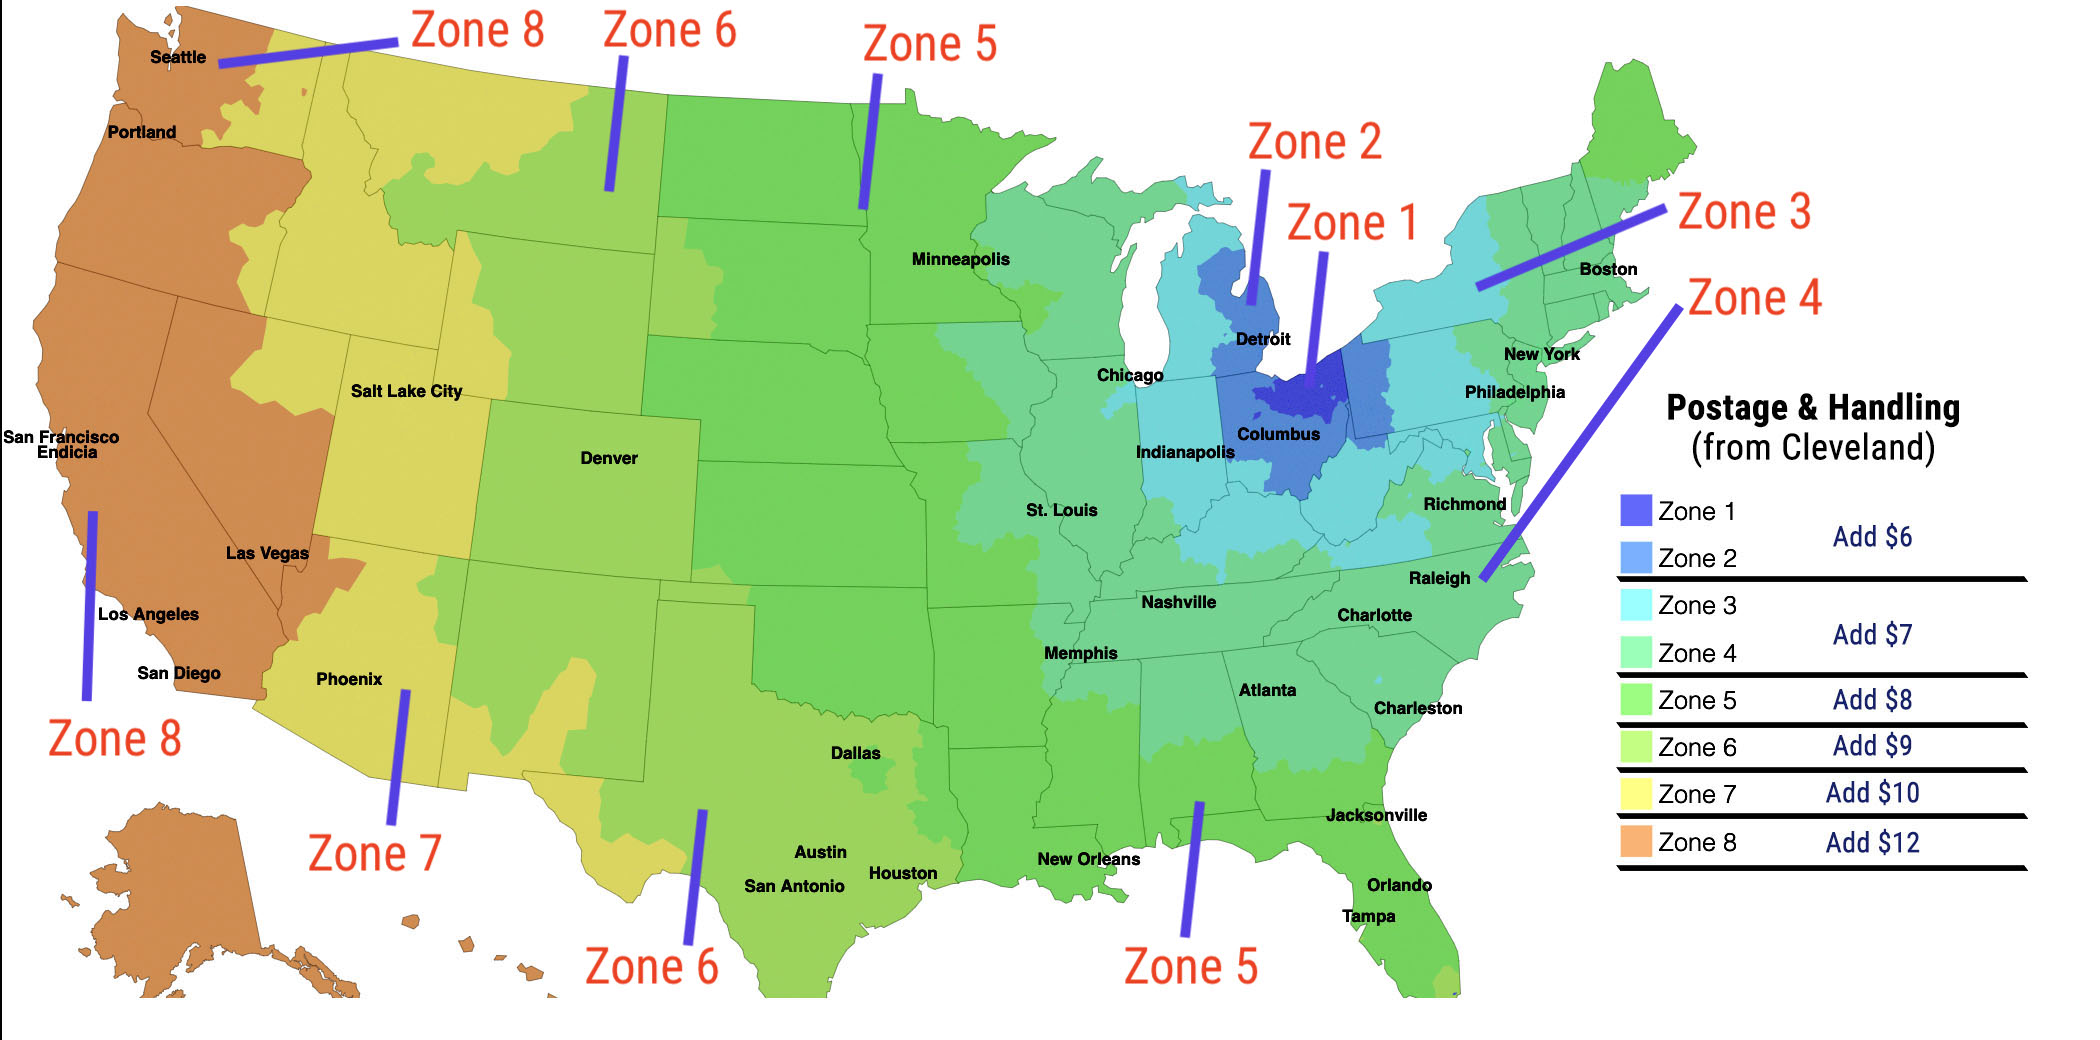 Shipping Zones from Cleveland